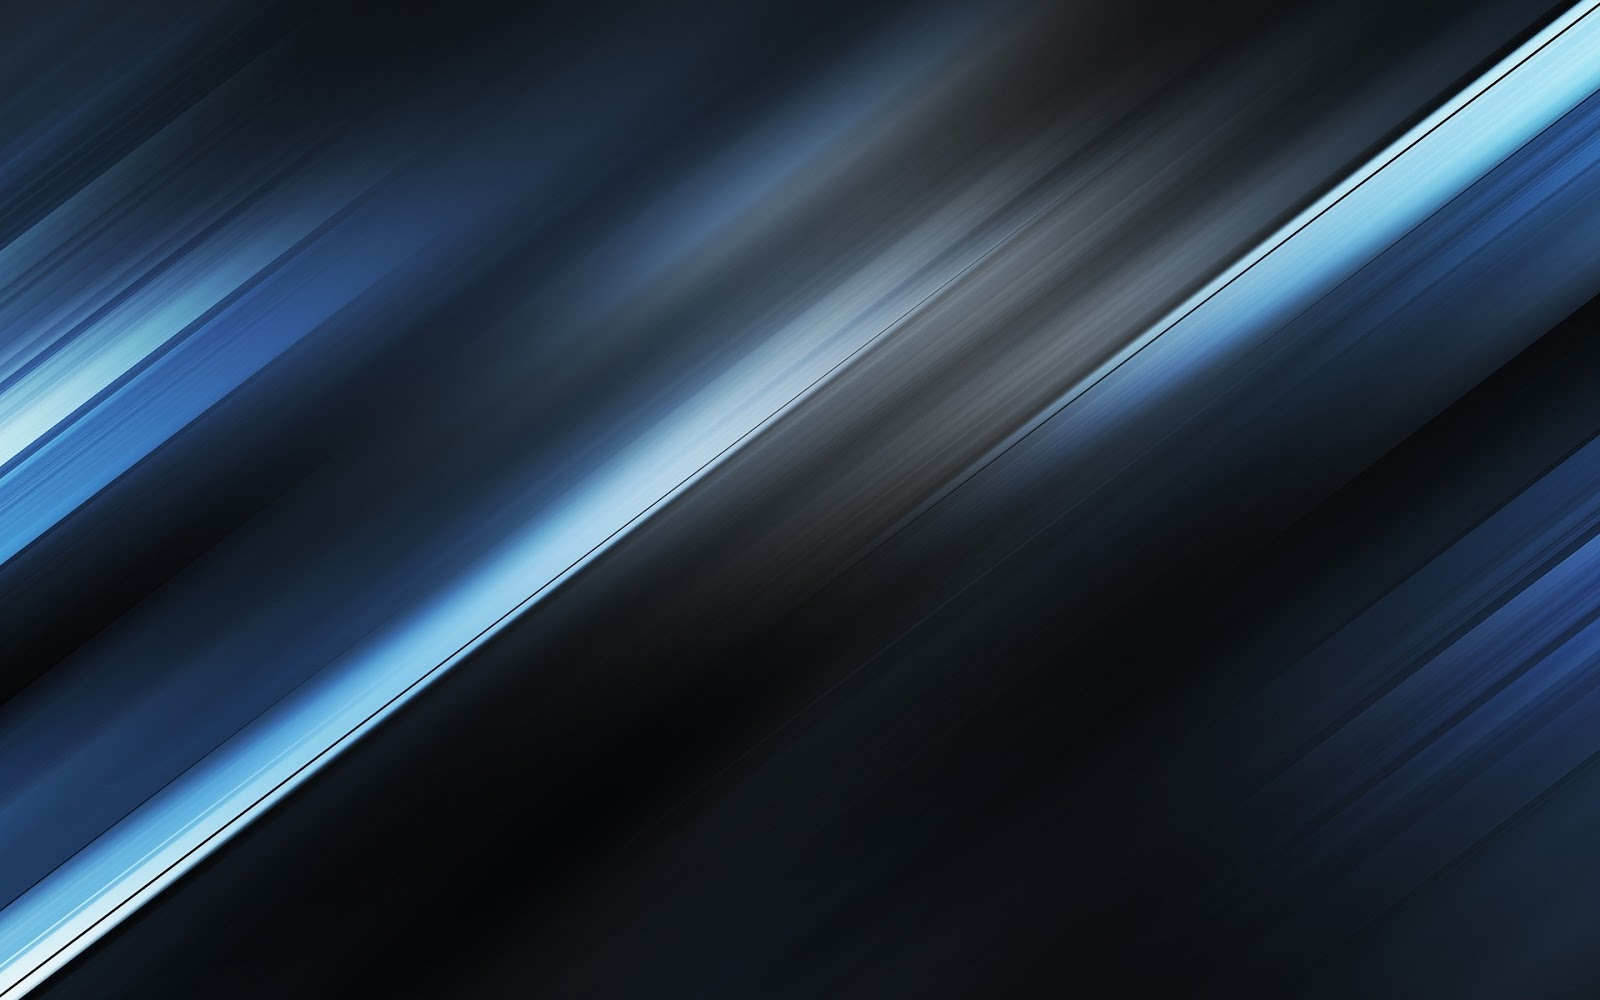 Abstract Background#19